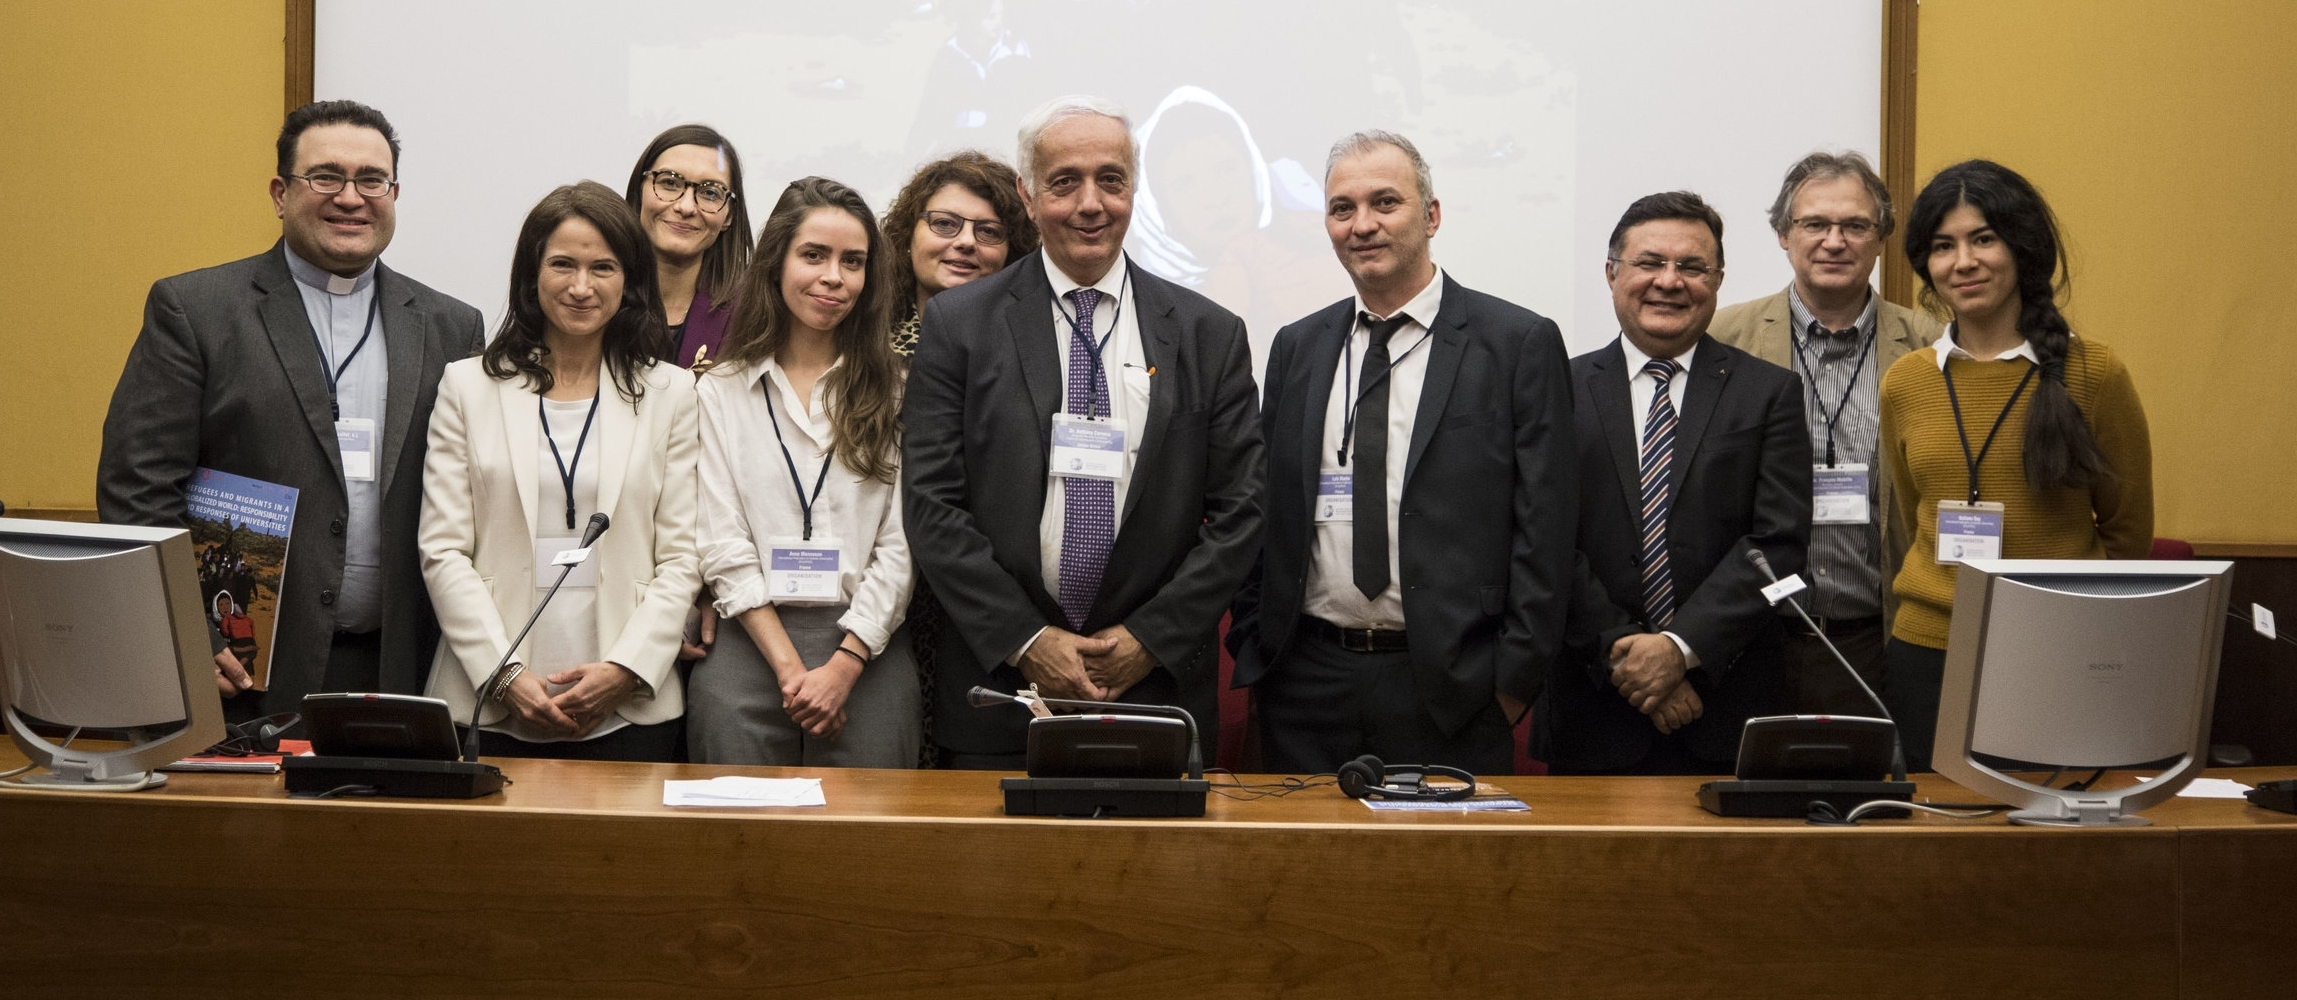 Organisers and Partners of the IMRE conference: IFCU - International Federation of Catholic Universities, Pontificia Università Gregoriana, Being the Blessing Foundation, Center for Interreligious Understanding, Projects For All, Aleteia